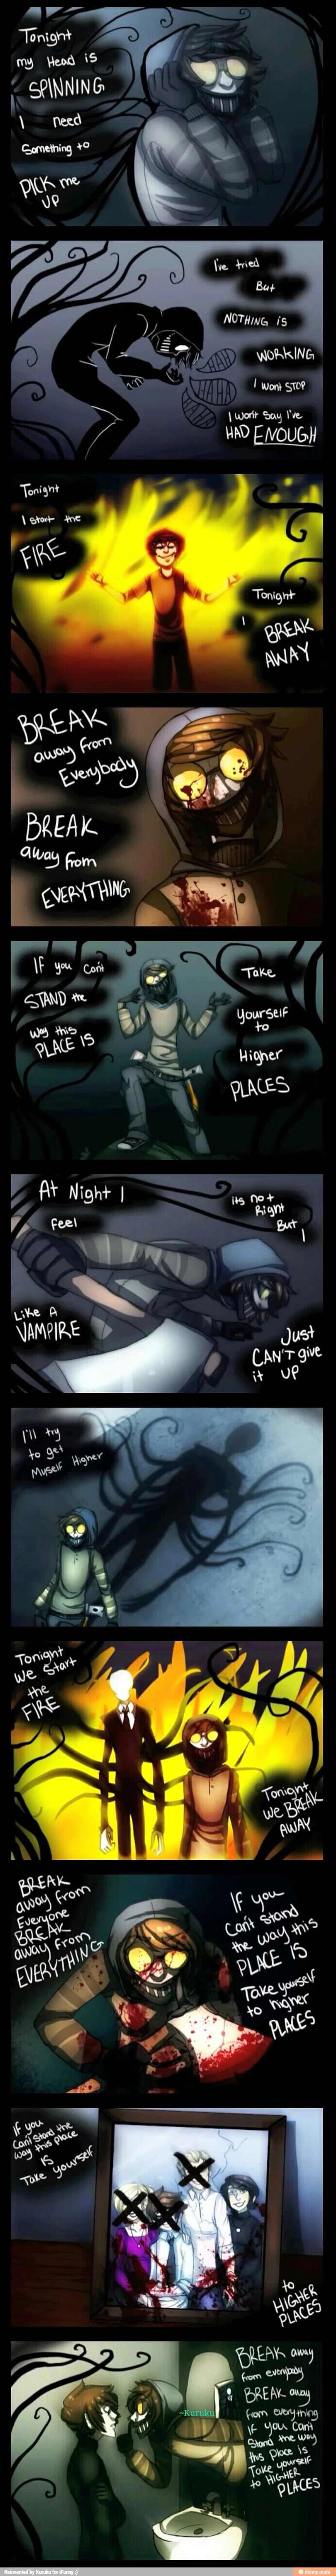 Always-have-loved-three-days-grace-but-add-creepypasta-Perfection-wallpaper-wp4603583